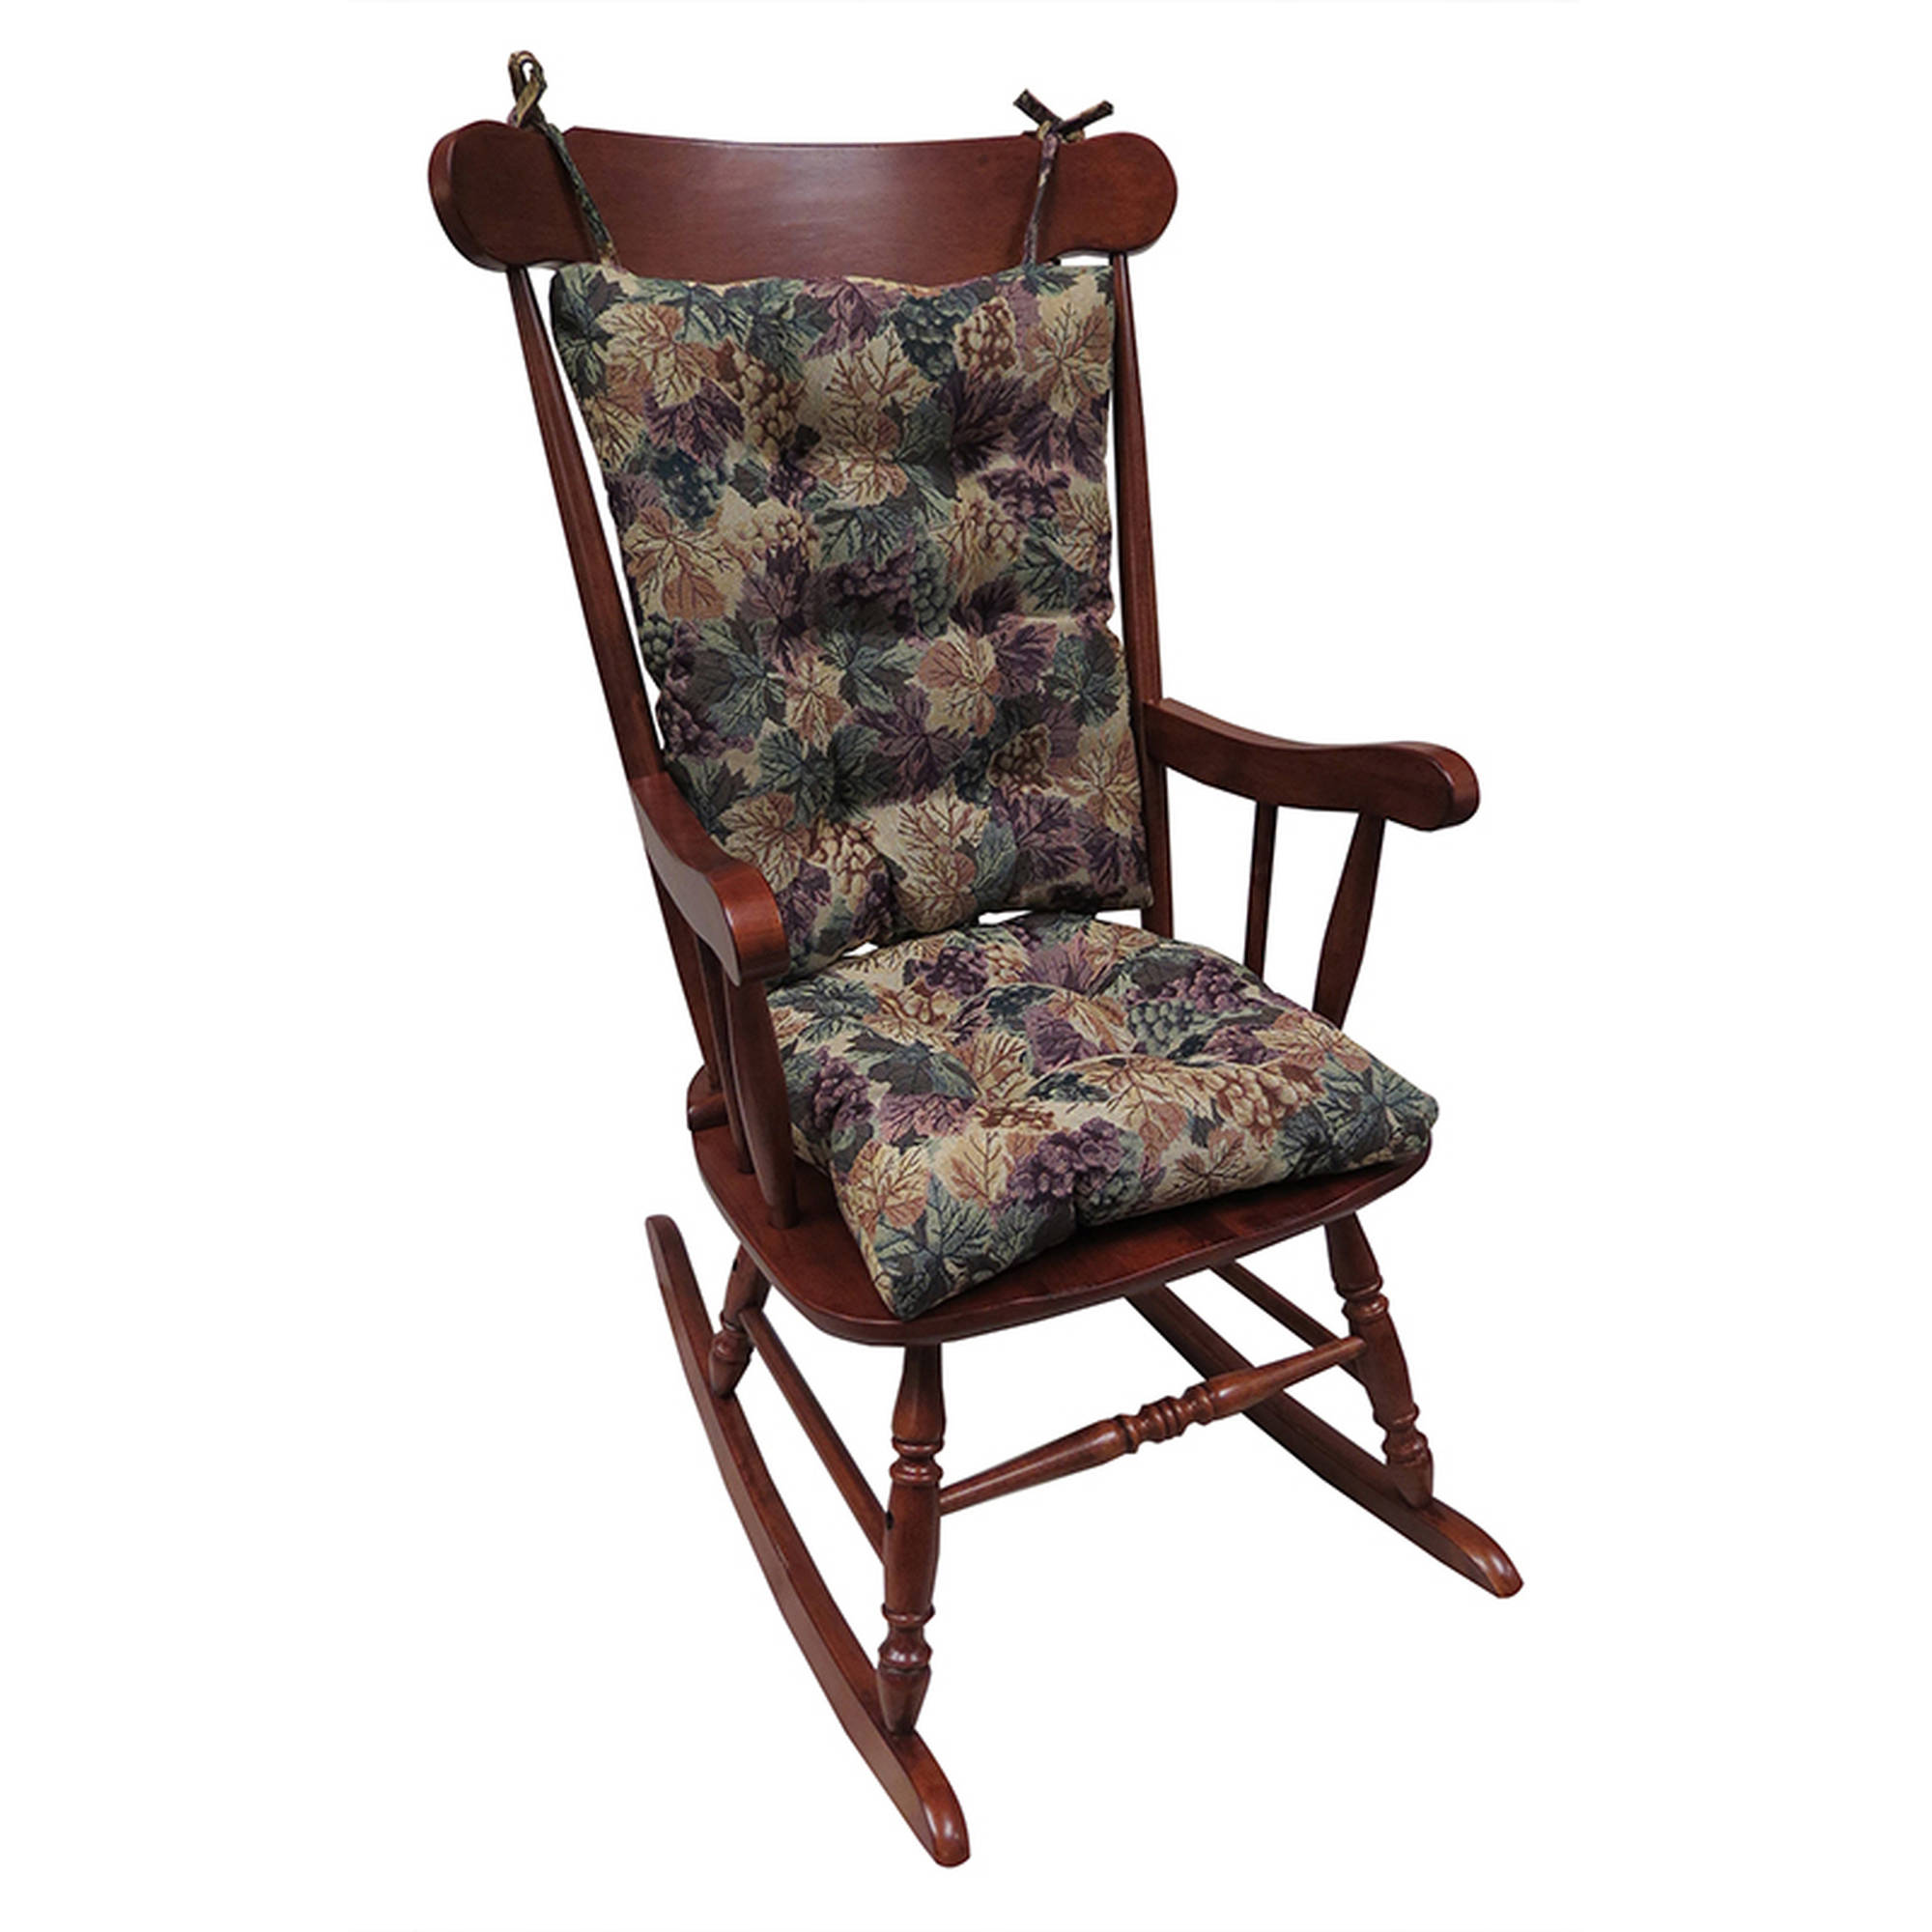 Gripper Jumbo Rocking Chair Cushions, Cabernet